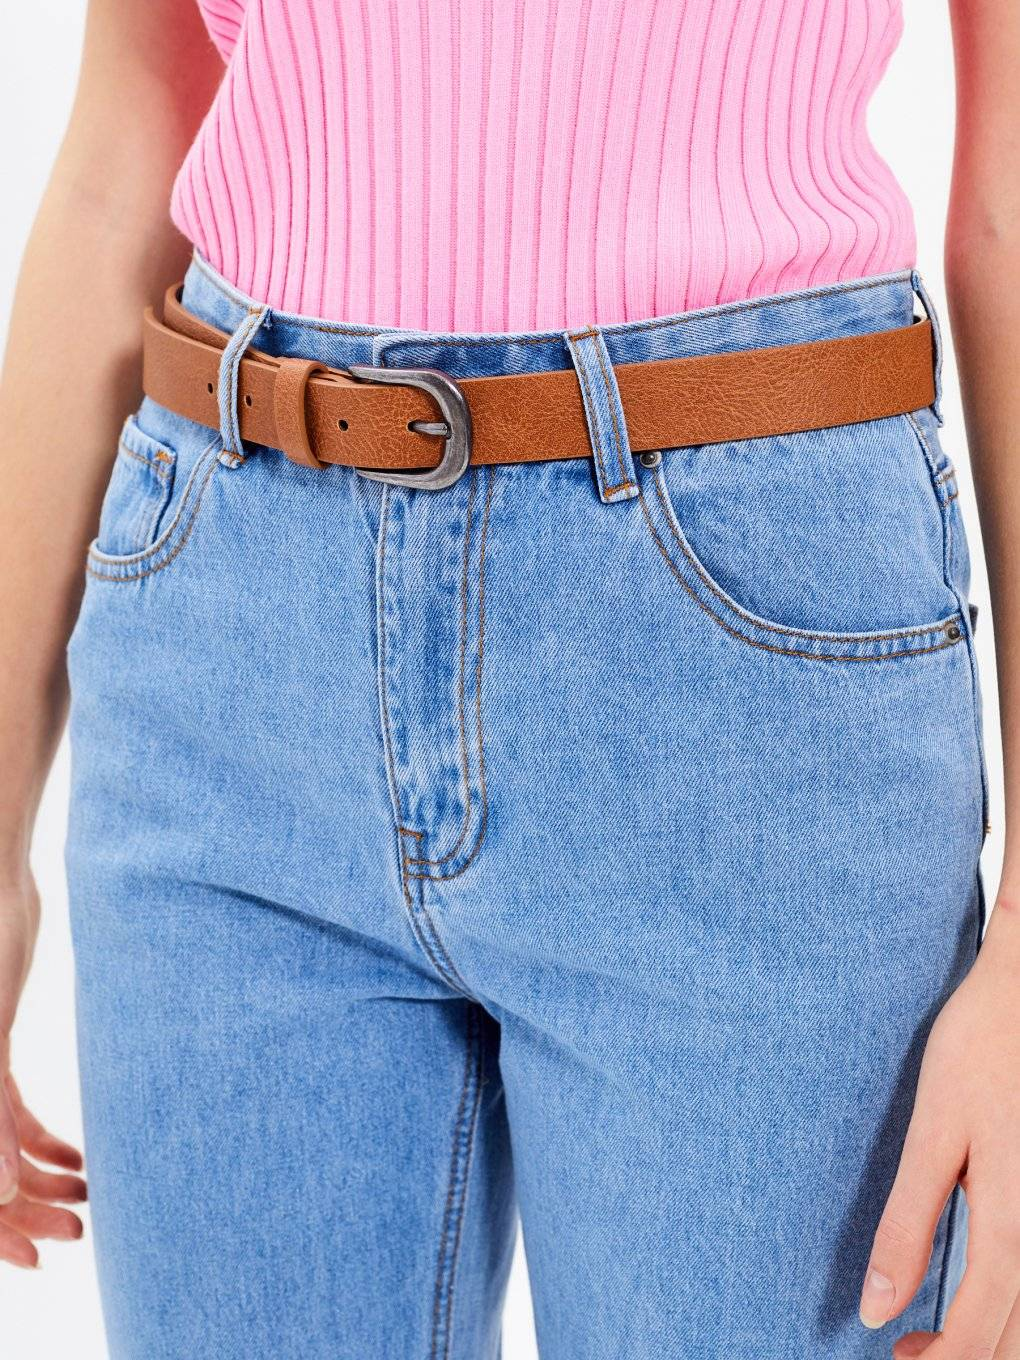 BELT WITH METAL BUCKLE